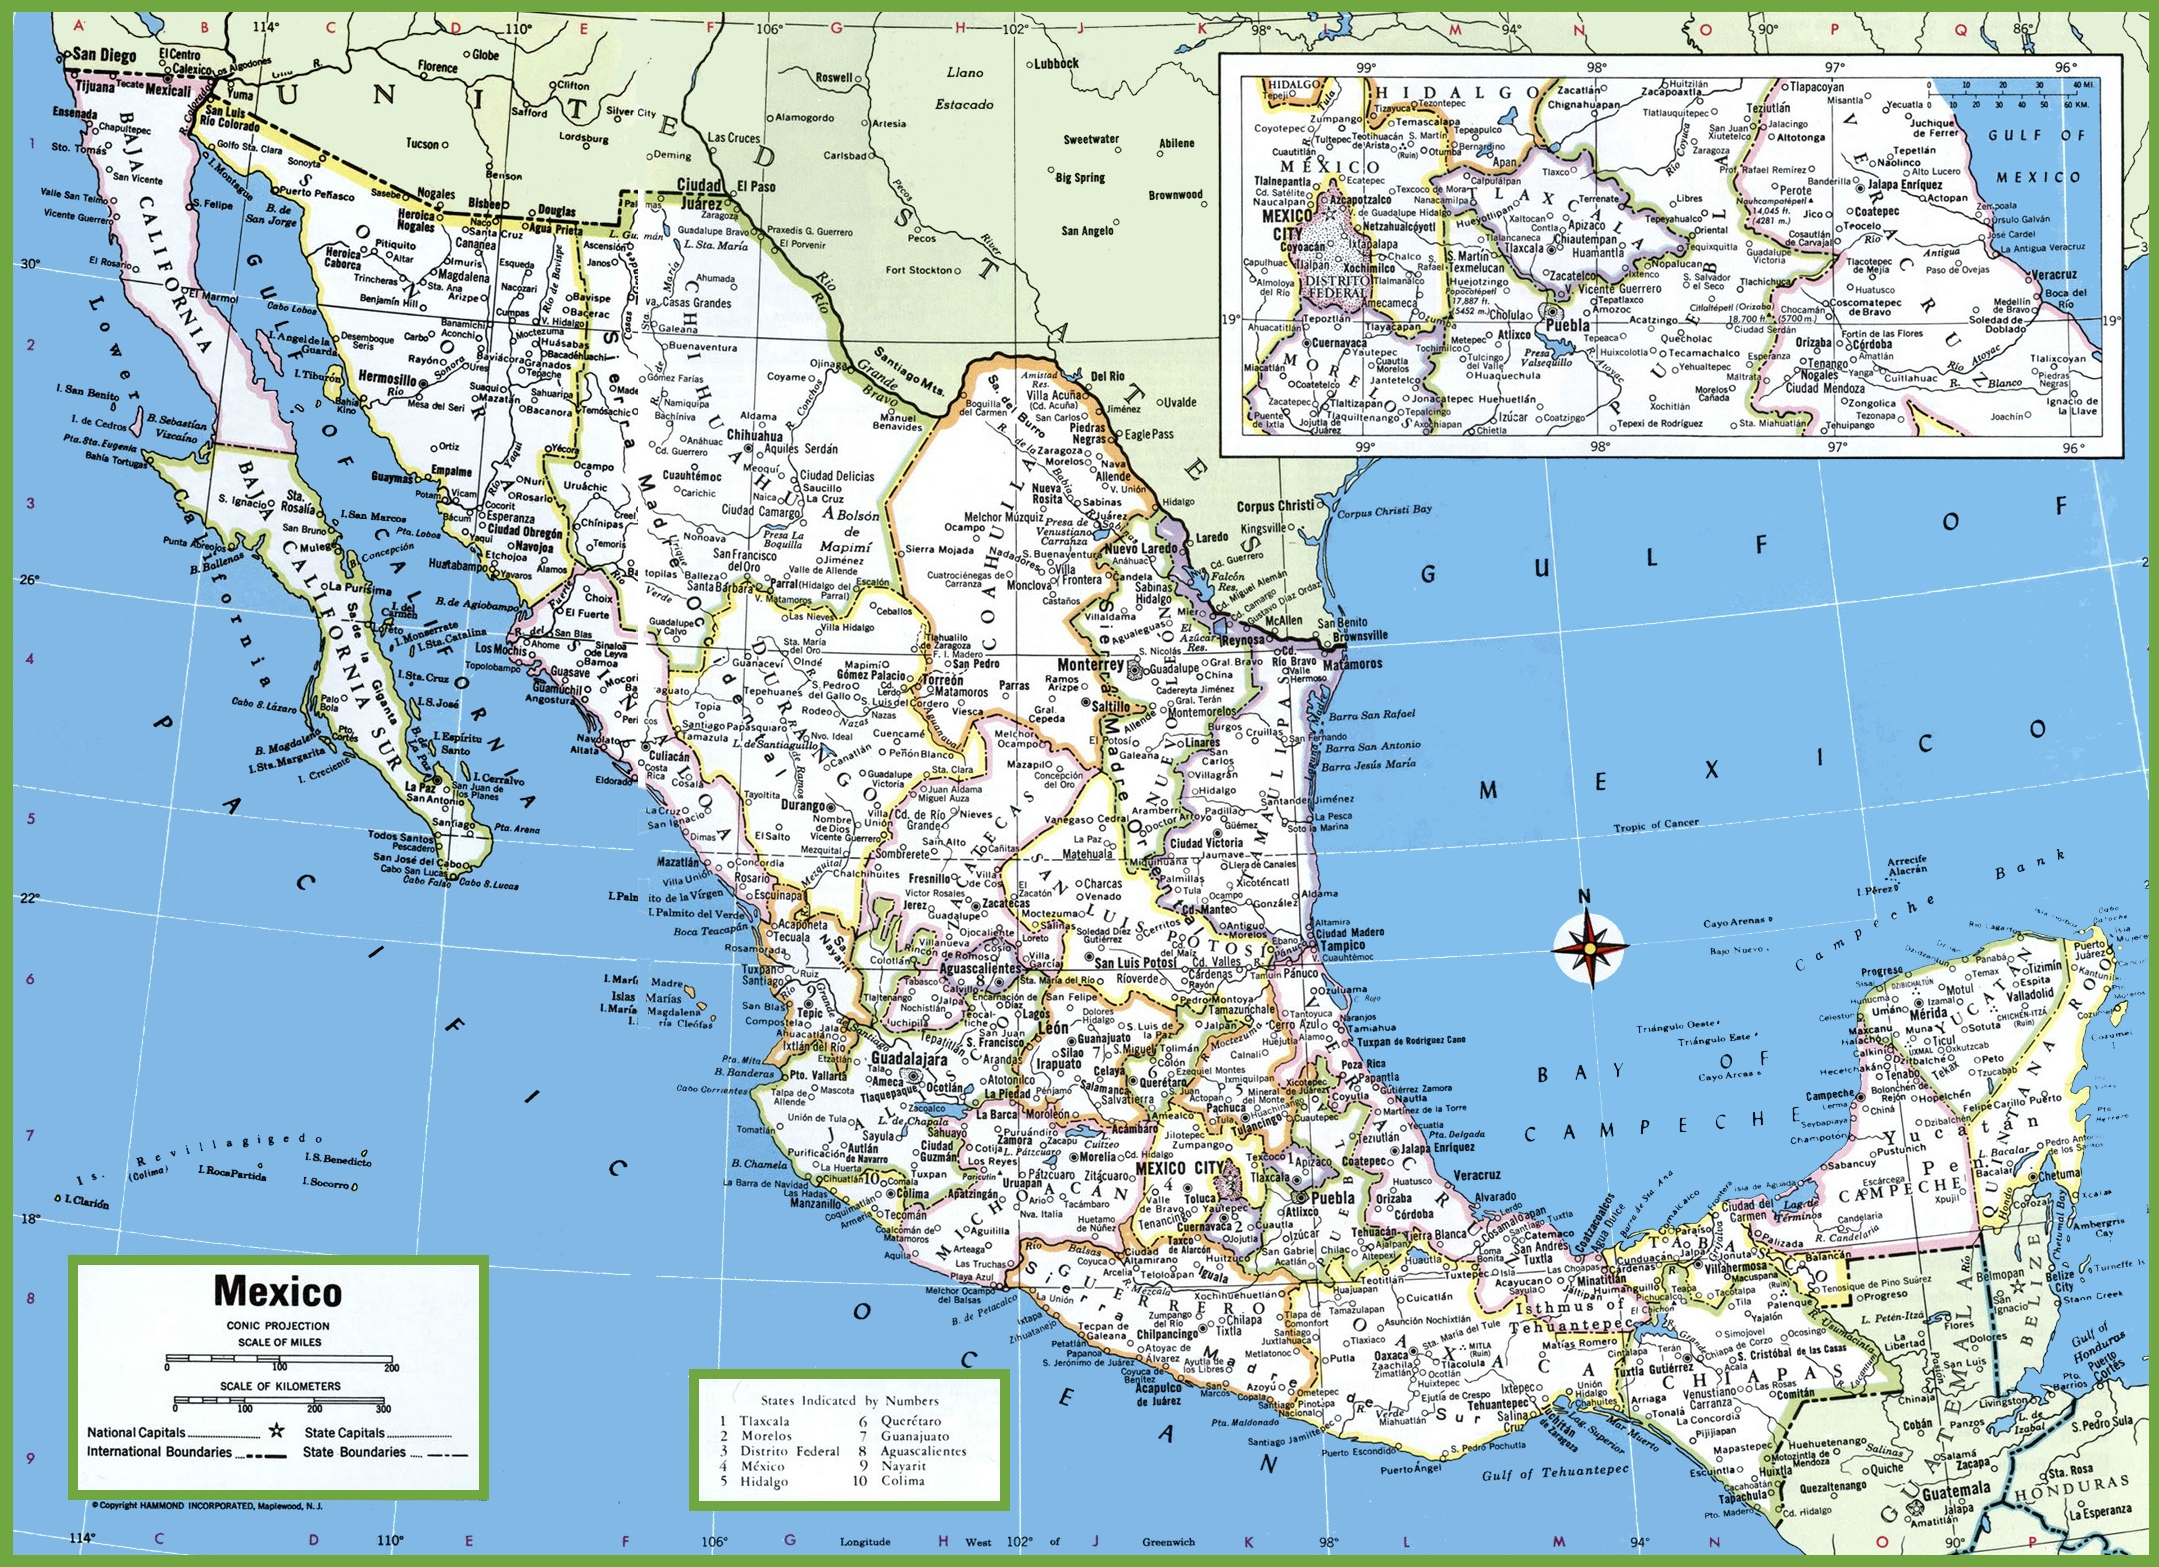 Map Of Mexico With Cities Large detailed map of Mexico with cities and towns